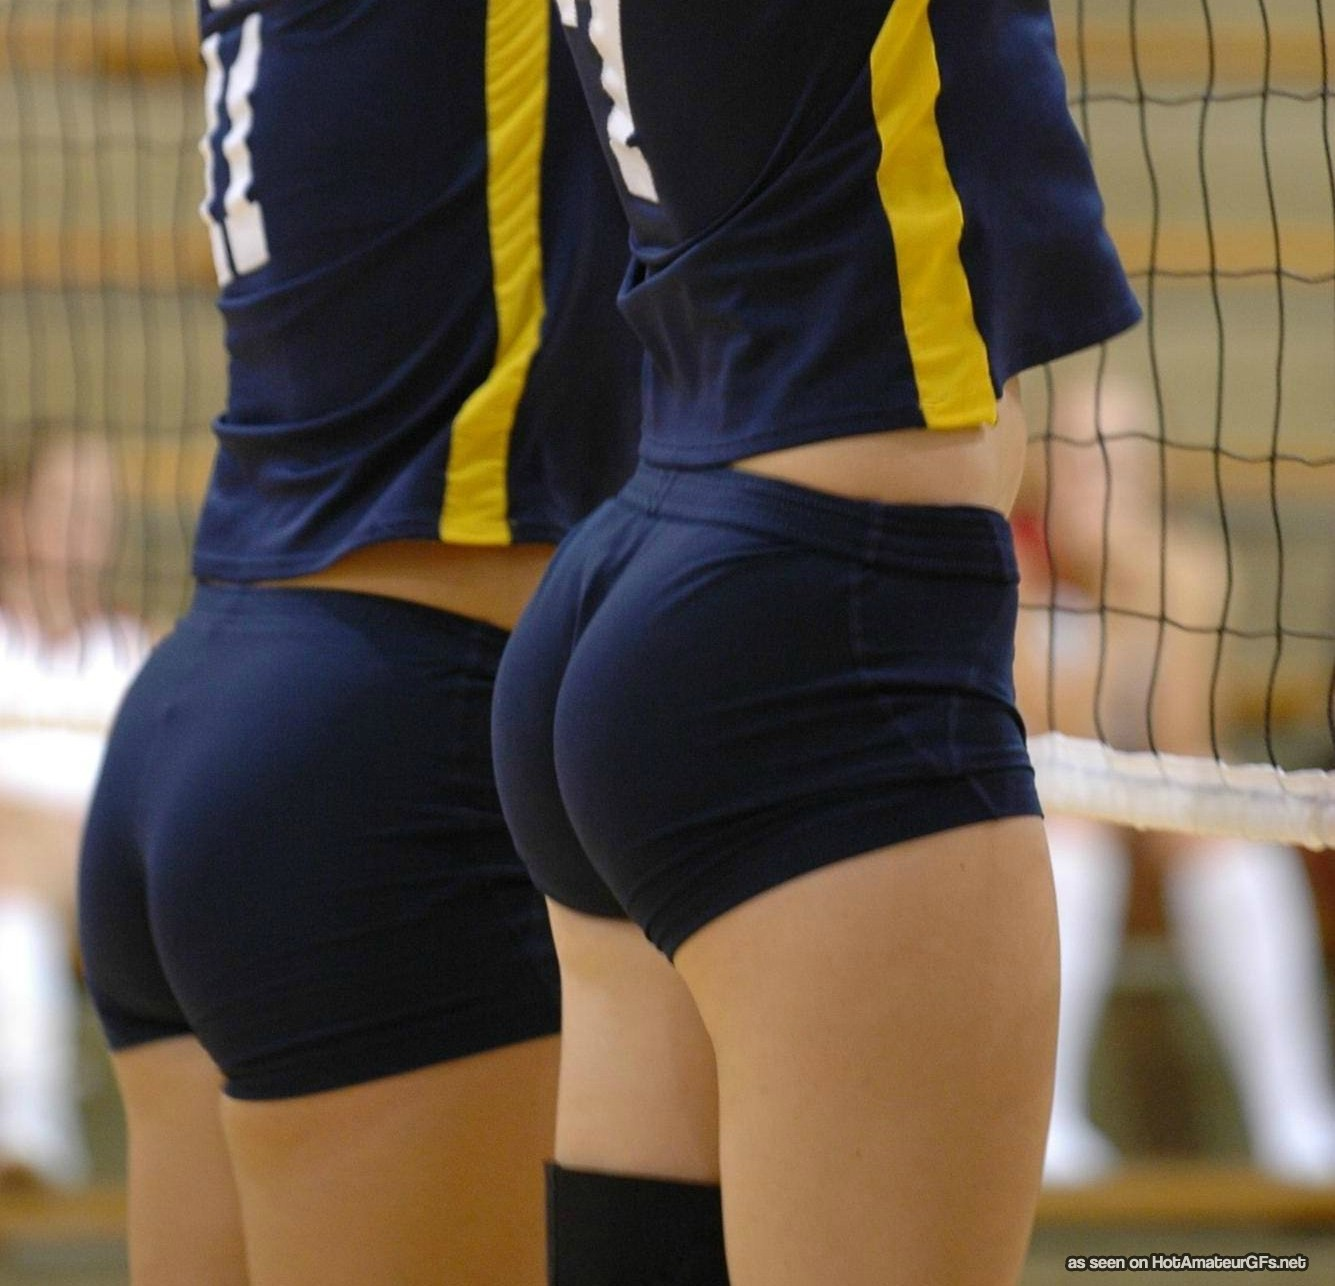 girls asses volleyball shorts